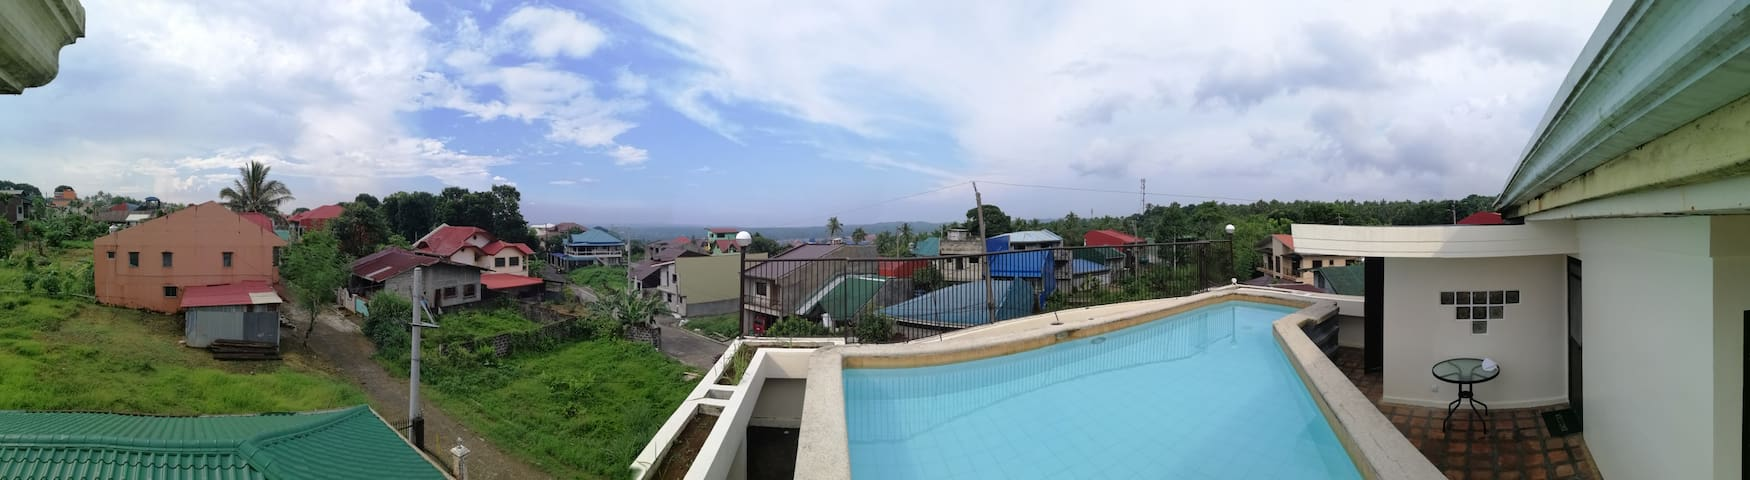 Quaint space w/ private pool overlooking Lucban!